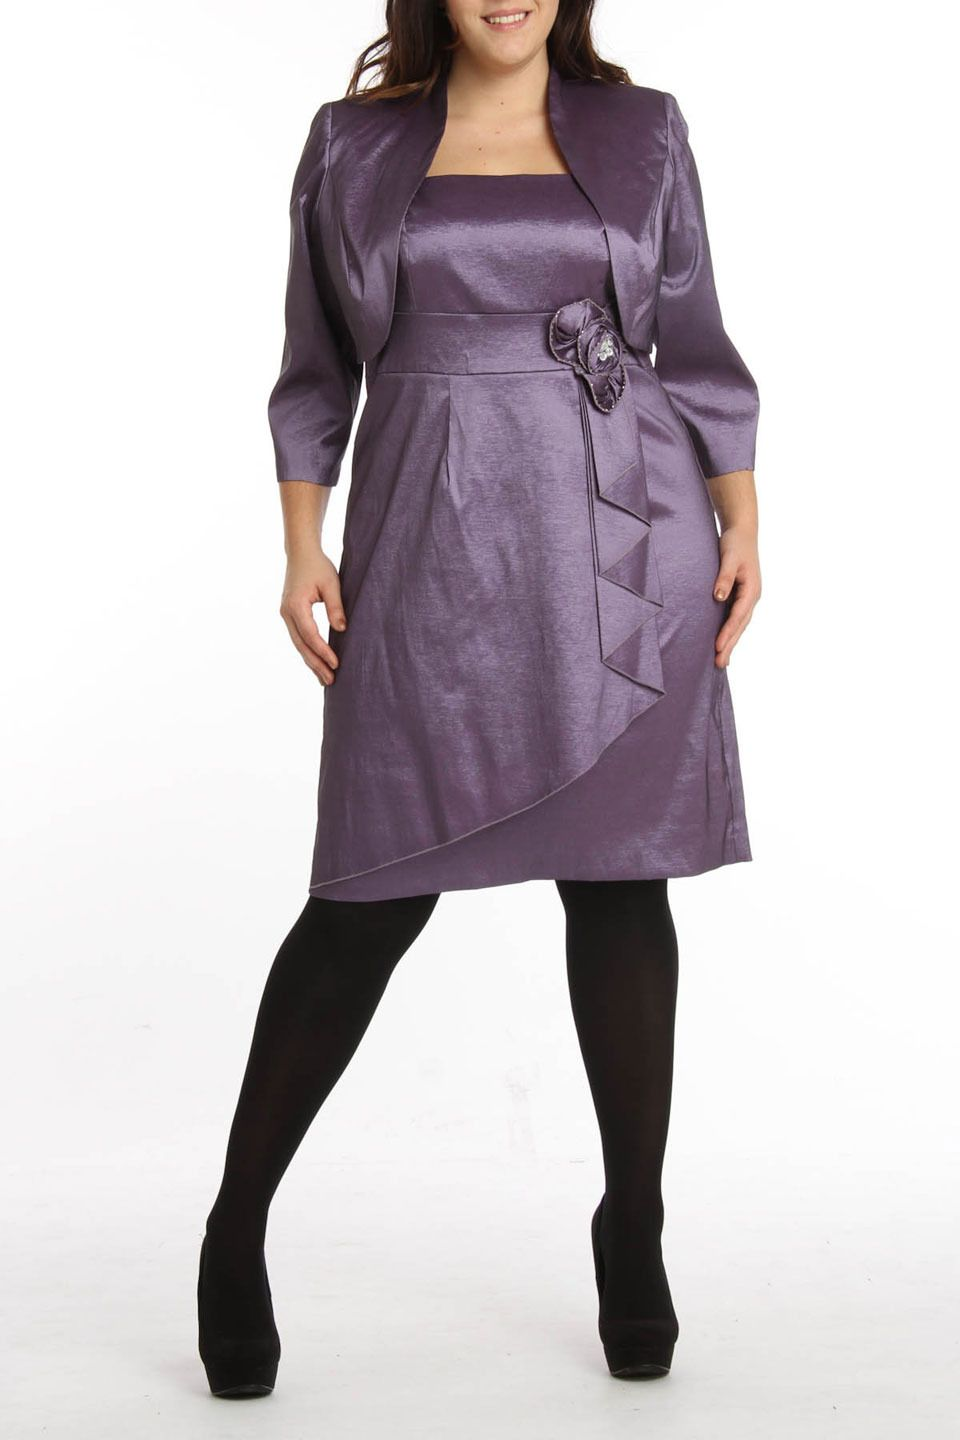 RM Richards Sarah Dress In Lavender - Beyond the Rack